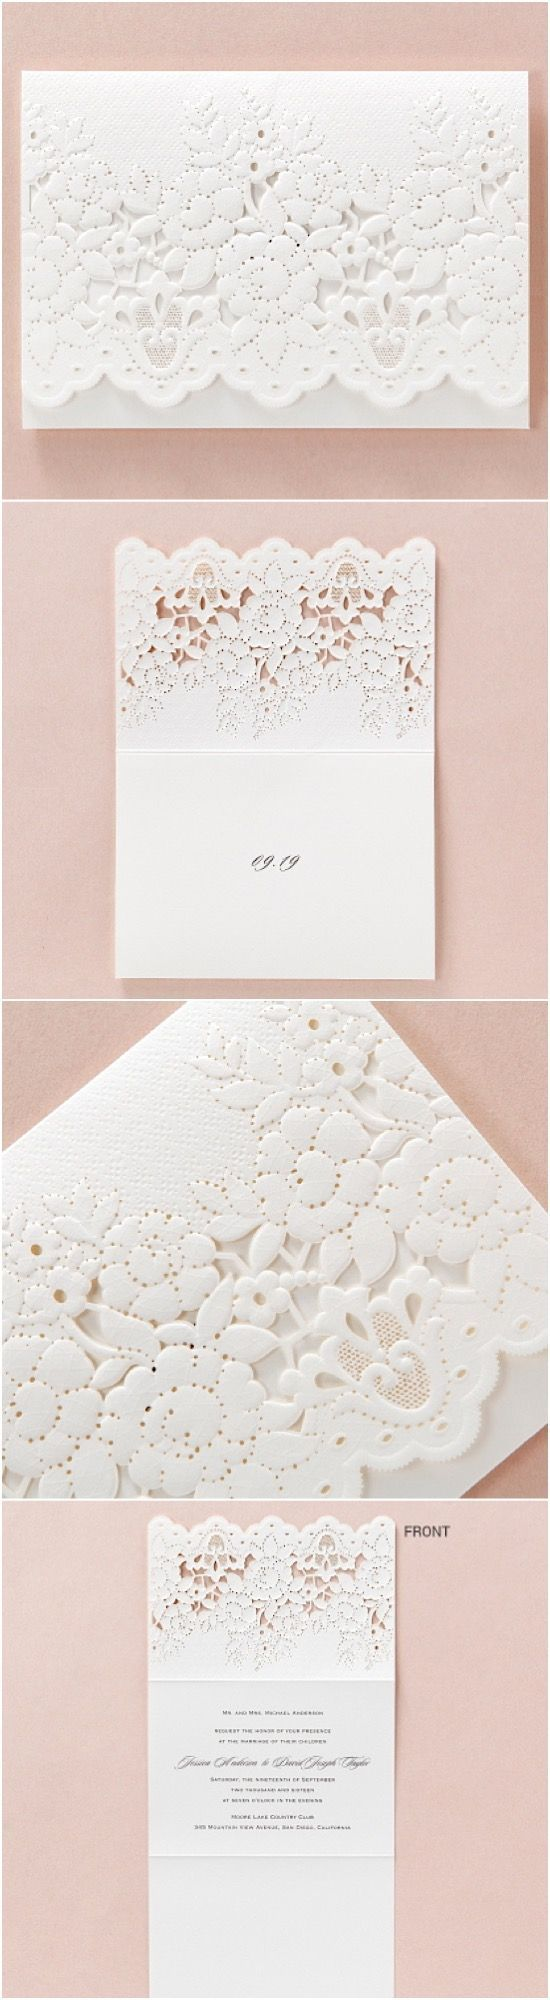 paper style wedding invitations%0A Lace embossed lasercut wedding stationery by B Wedding Invitations